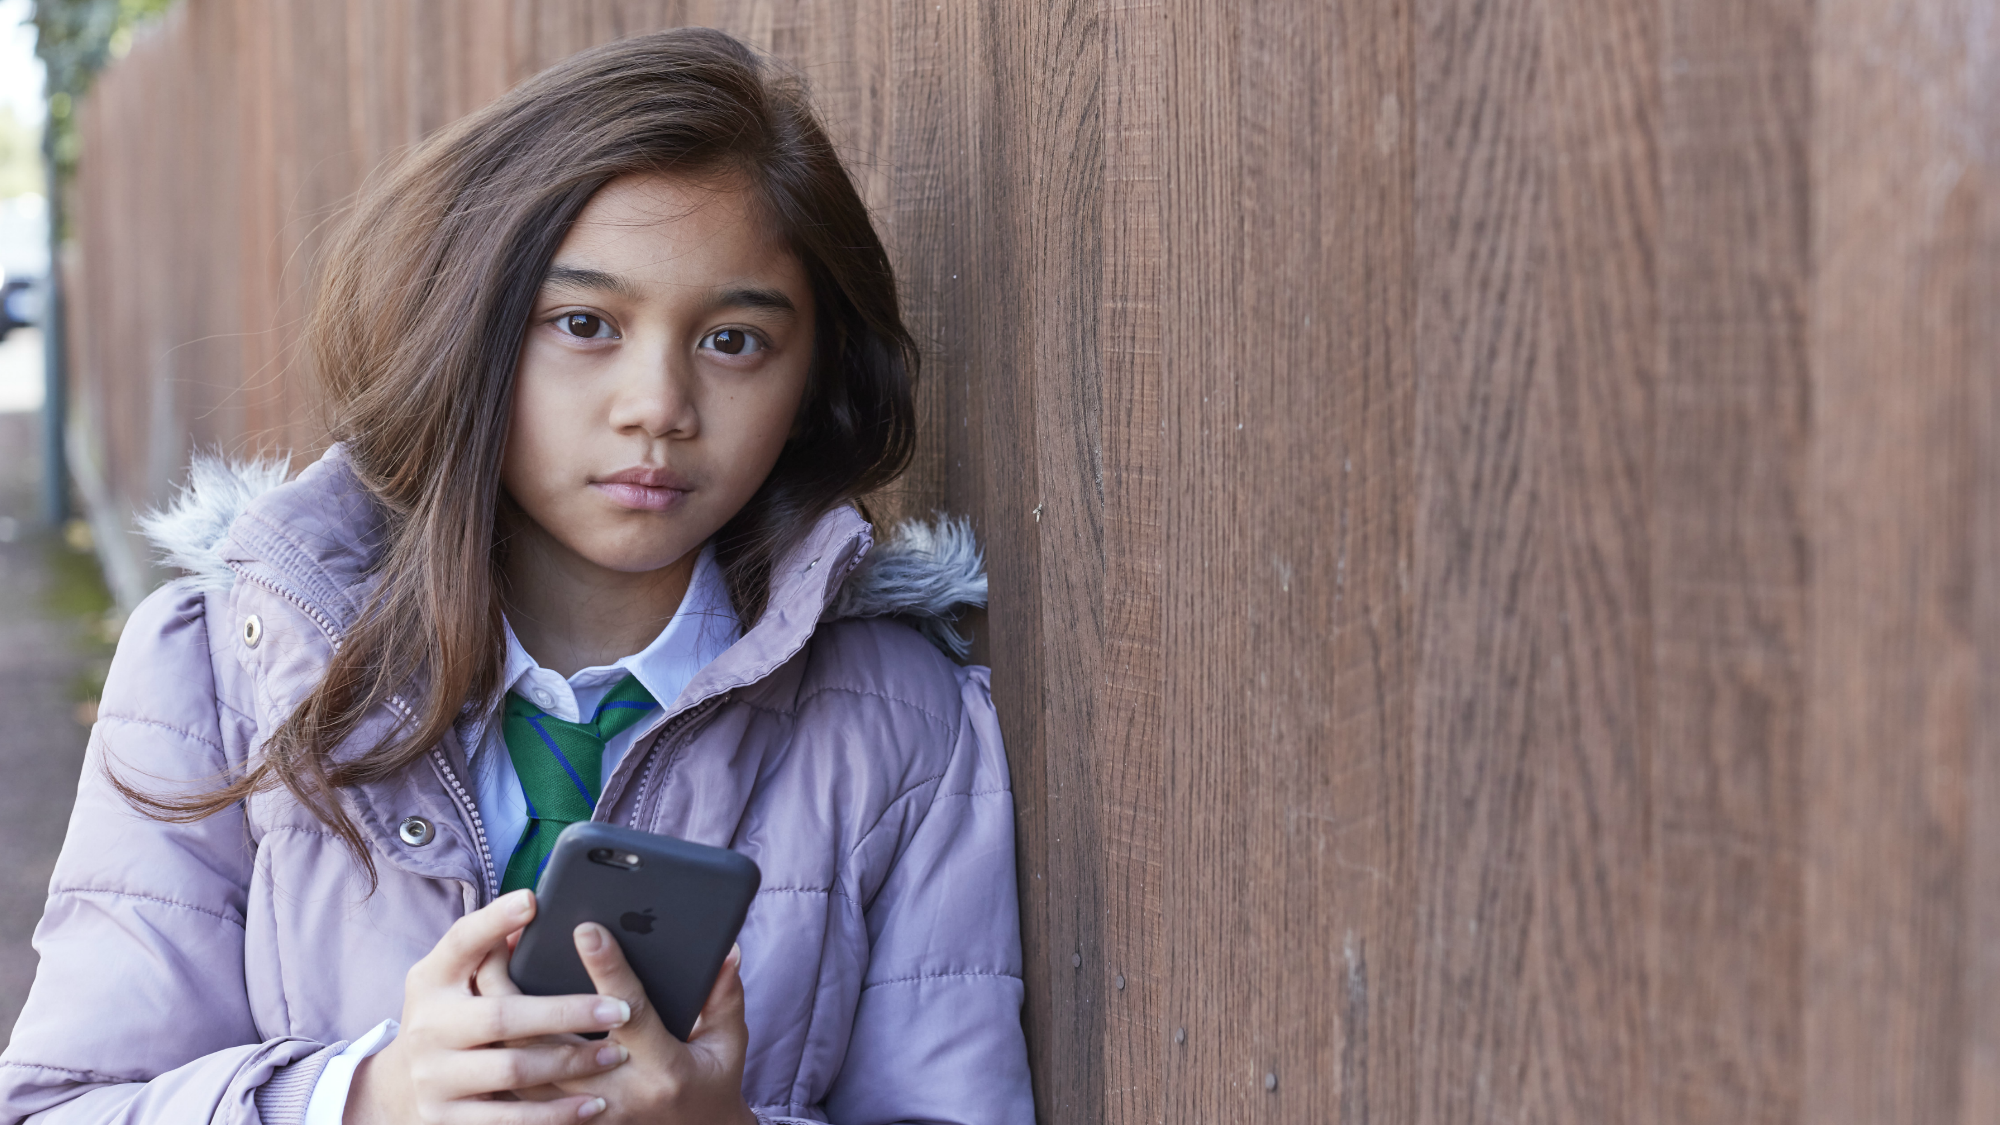 Young girl leaning against fence, holding phone